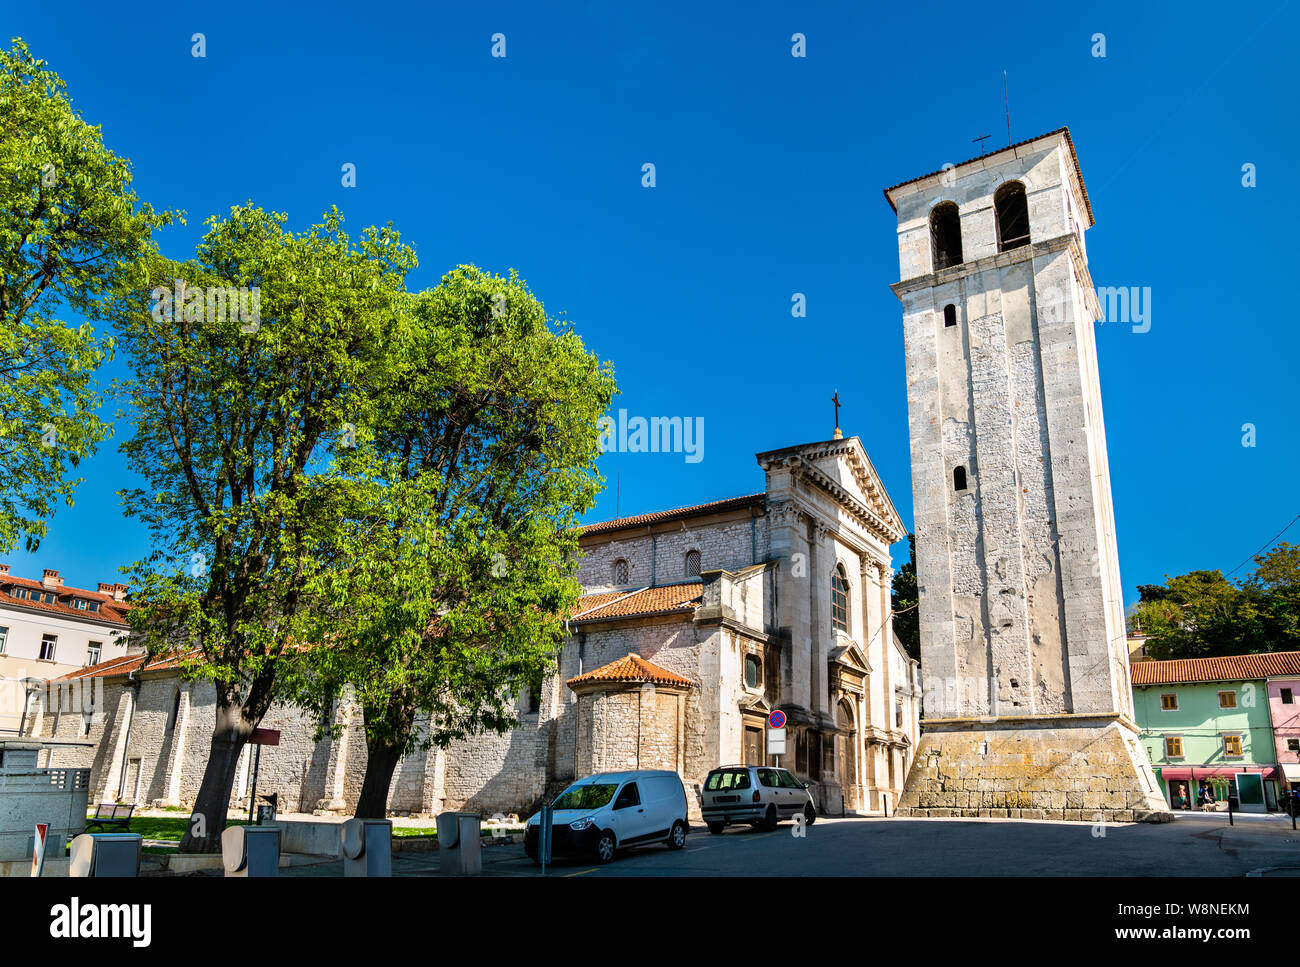 The Pula Cathedral in Croatia Stock Photo